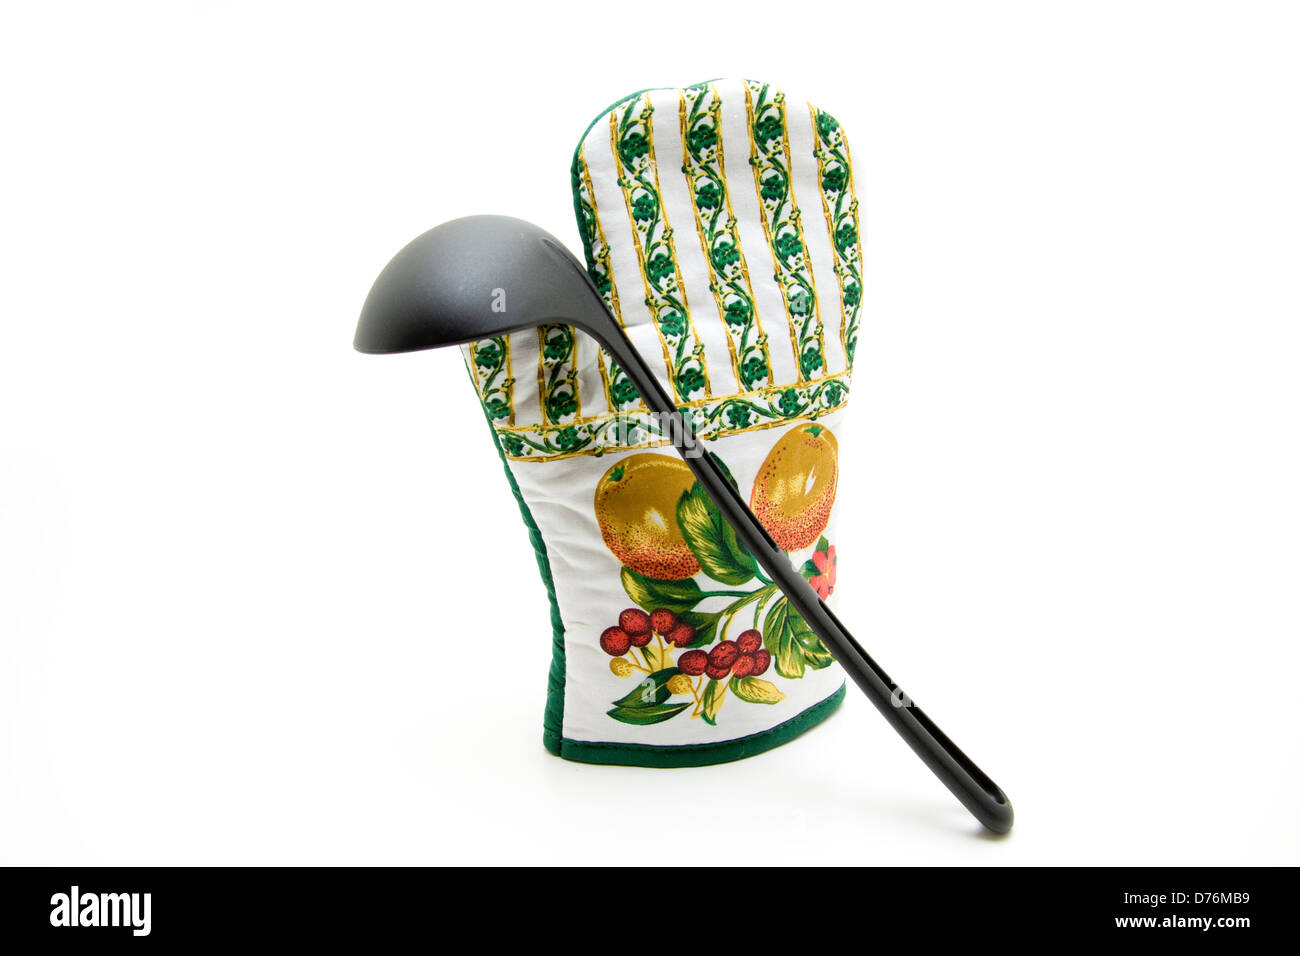 Pot glove and pot holder and soup ladle - Stock Image